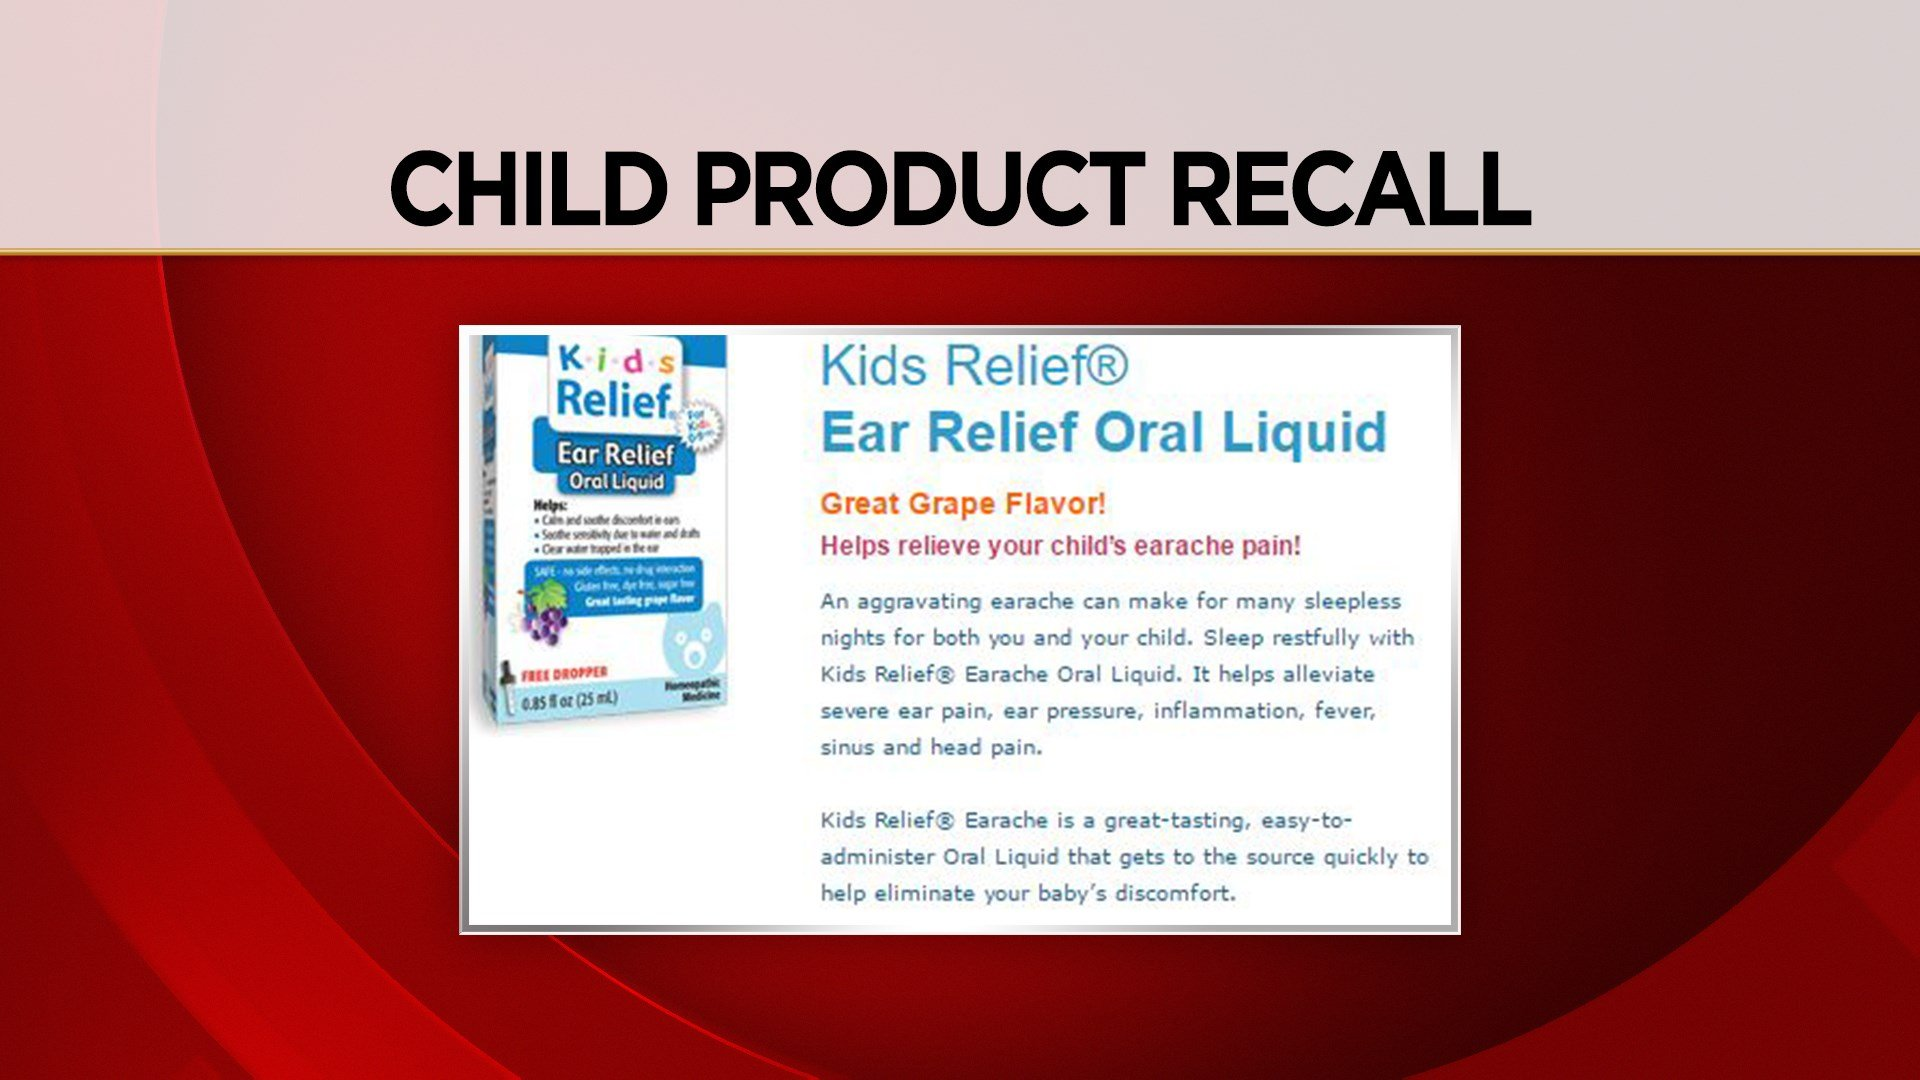 Kids Relief Homeopathic Ear Relief Oral Liquid (Kids Relief website/WFSB)